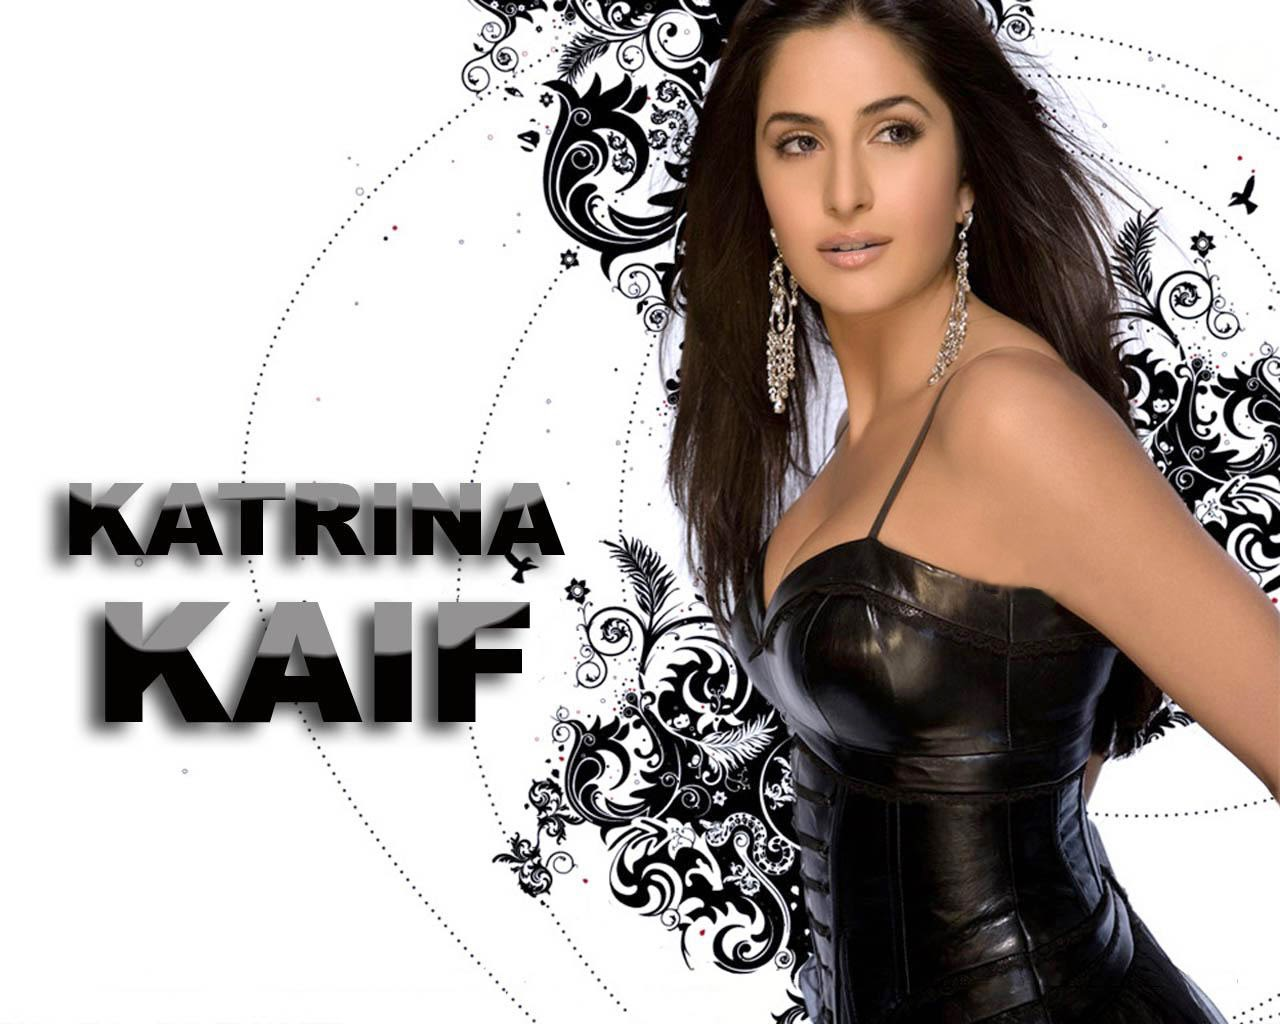 Katrina Kaif Hot Xxx Pics, Wallpaper, Photos, Pictures -4321